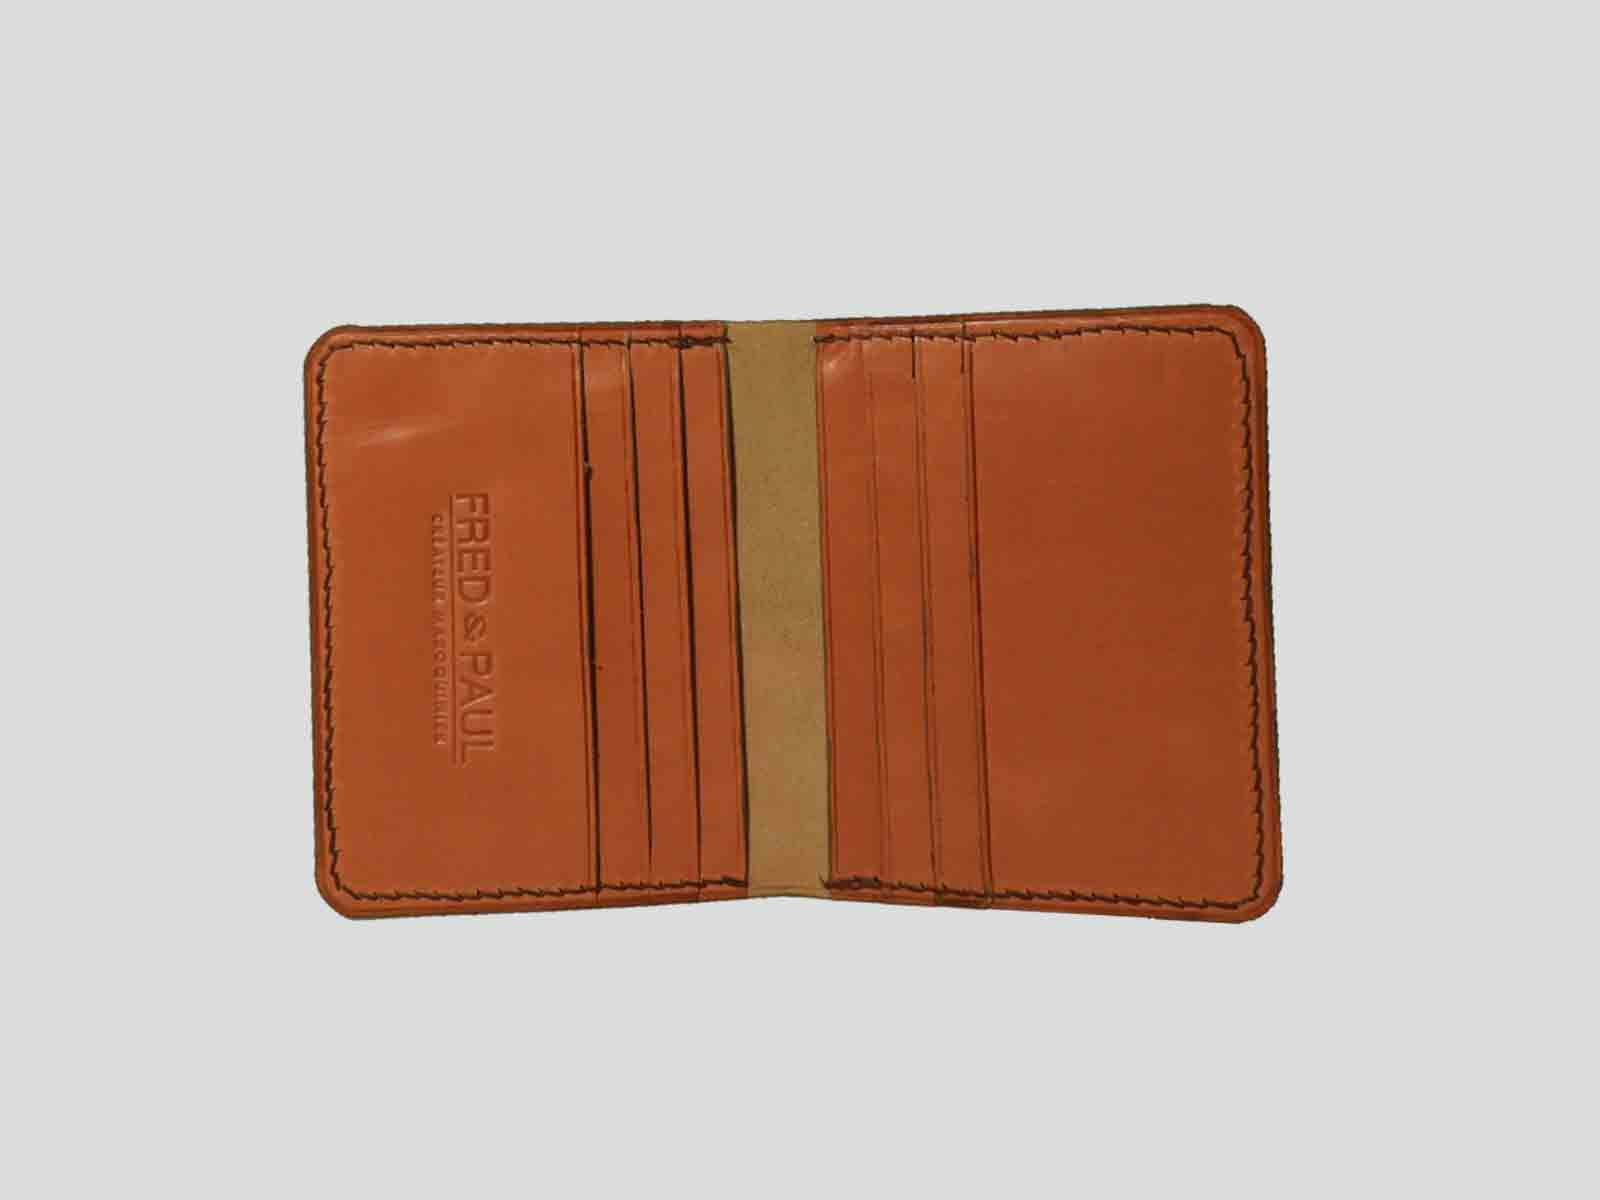 AUSTRAL porte cartes en cuir de veu orange